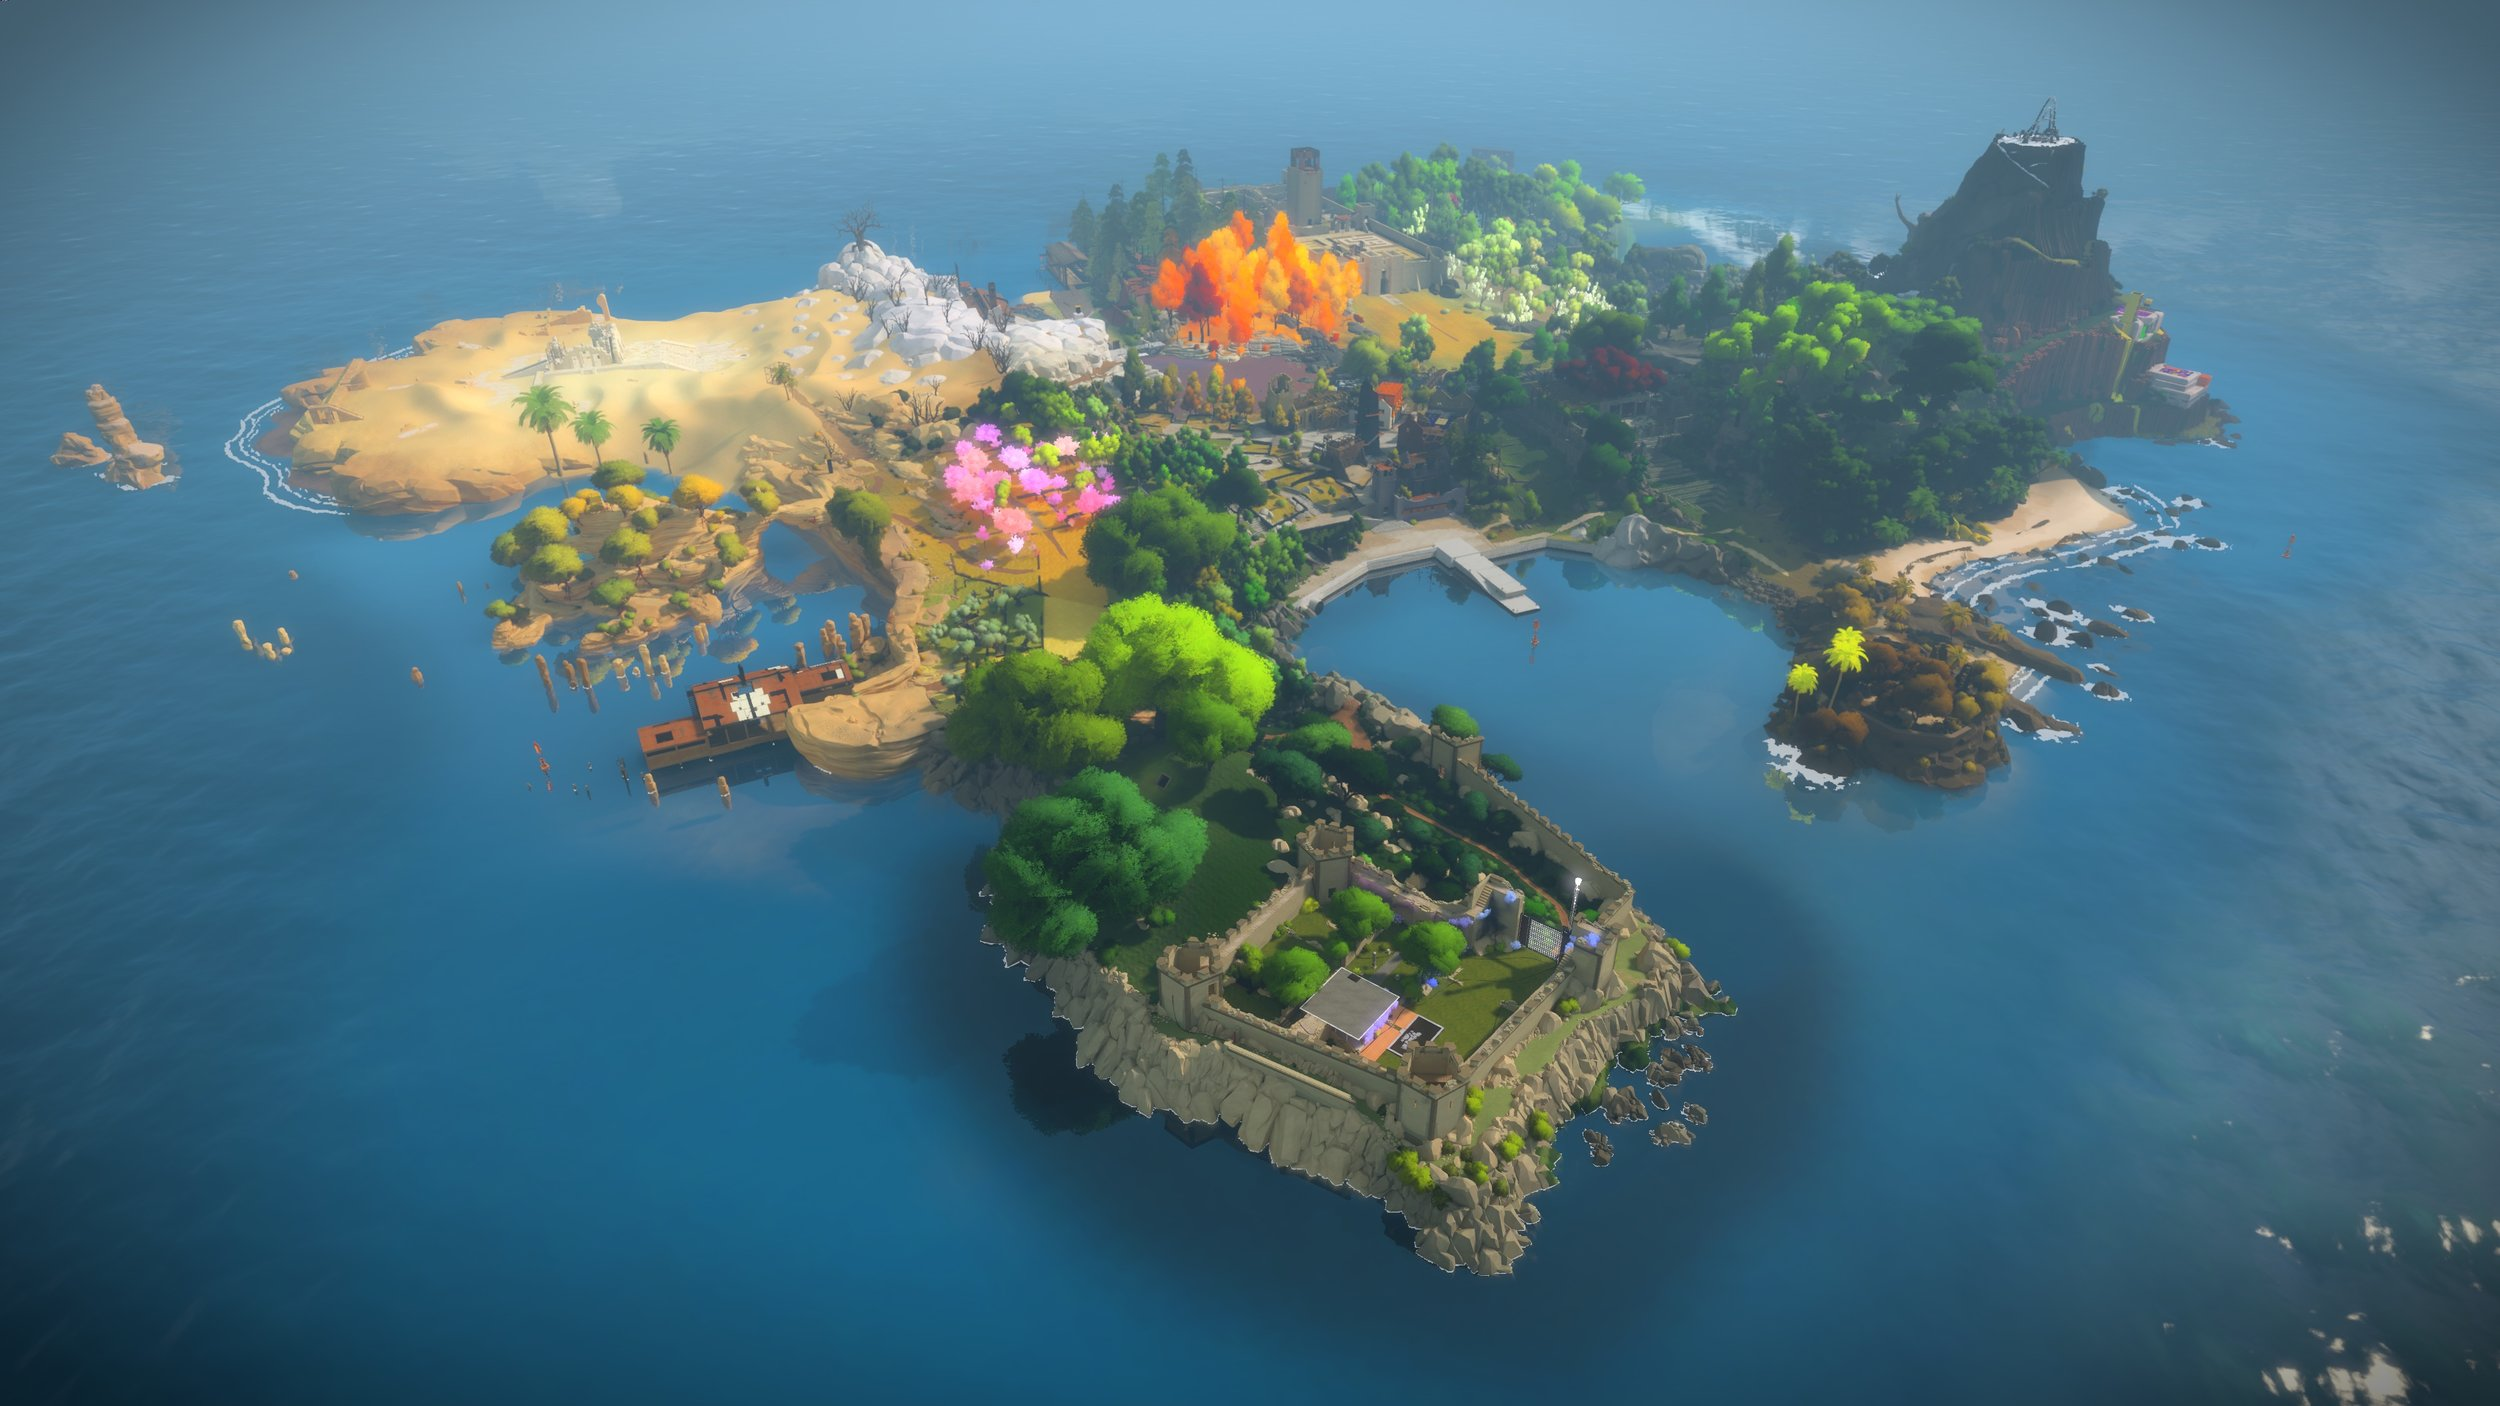 Figure 1: The Witness Island at the time of game publishing. (Thekla, 2014).